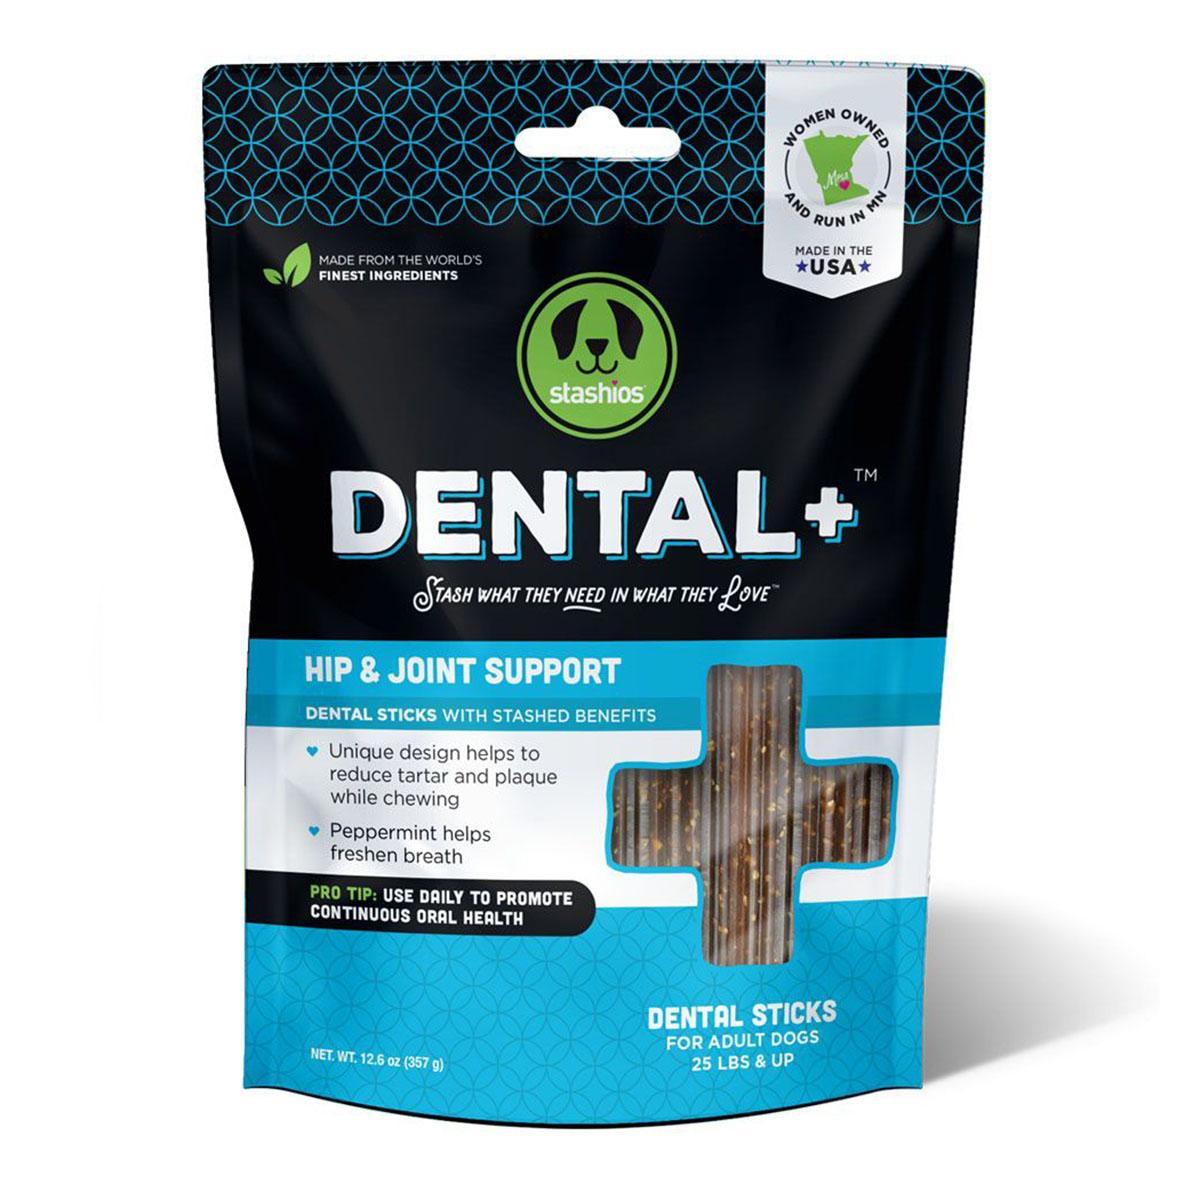 Stashios Dental+ Sticks with Hip & Joint Support Dog Treats